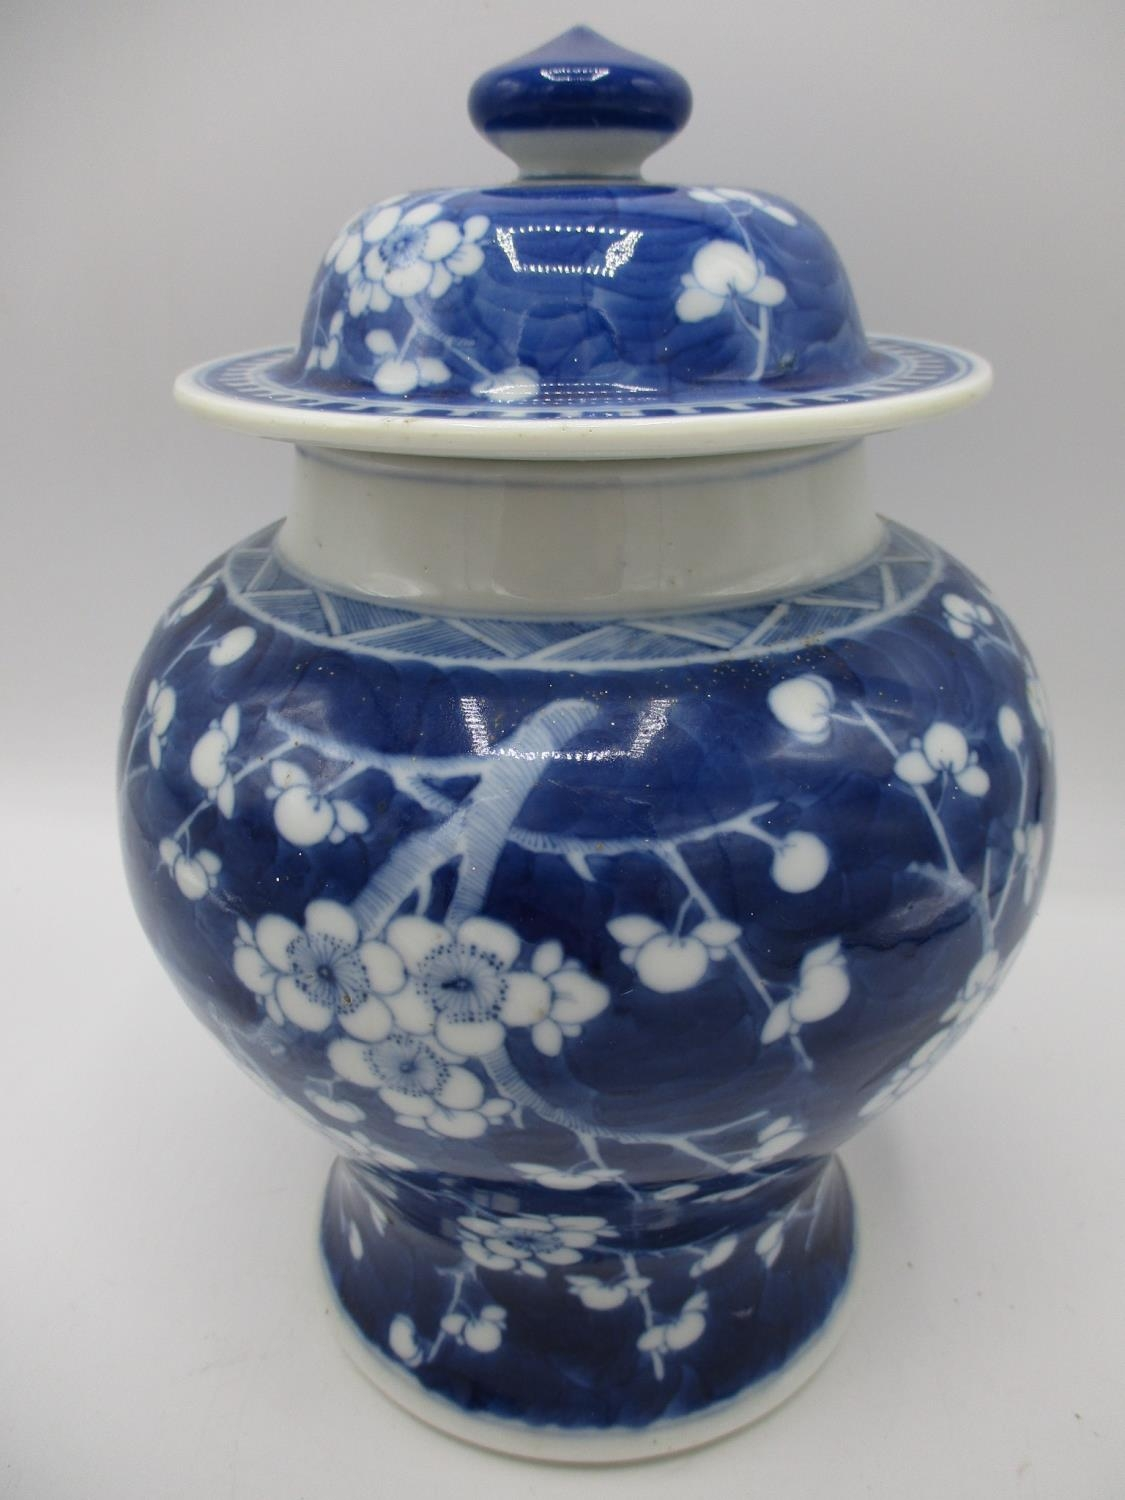 Asian Works of Art, followed by Antiques, Fine Art & Collectables